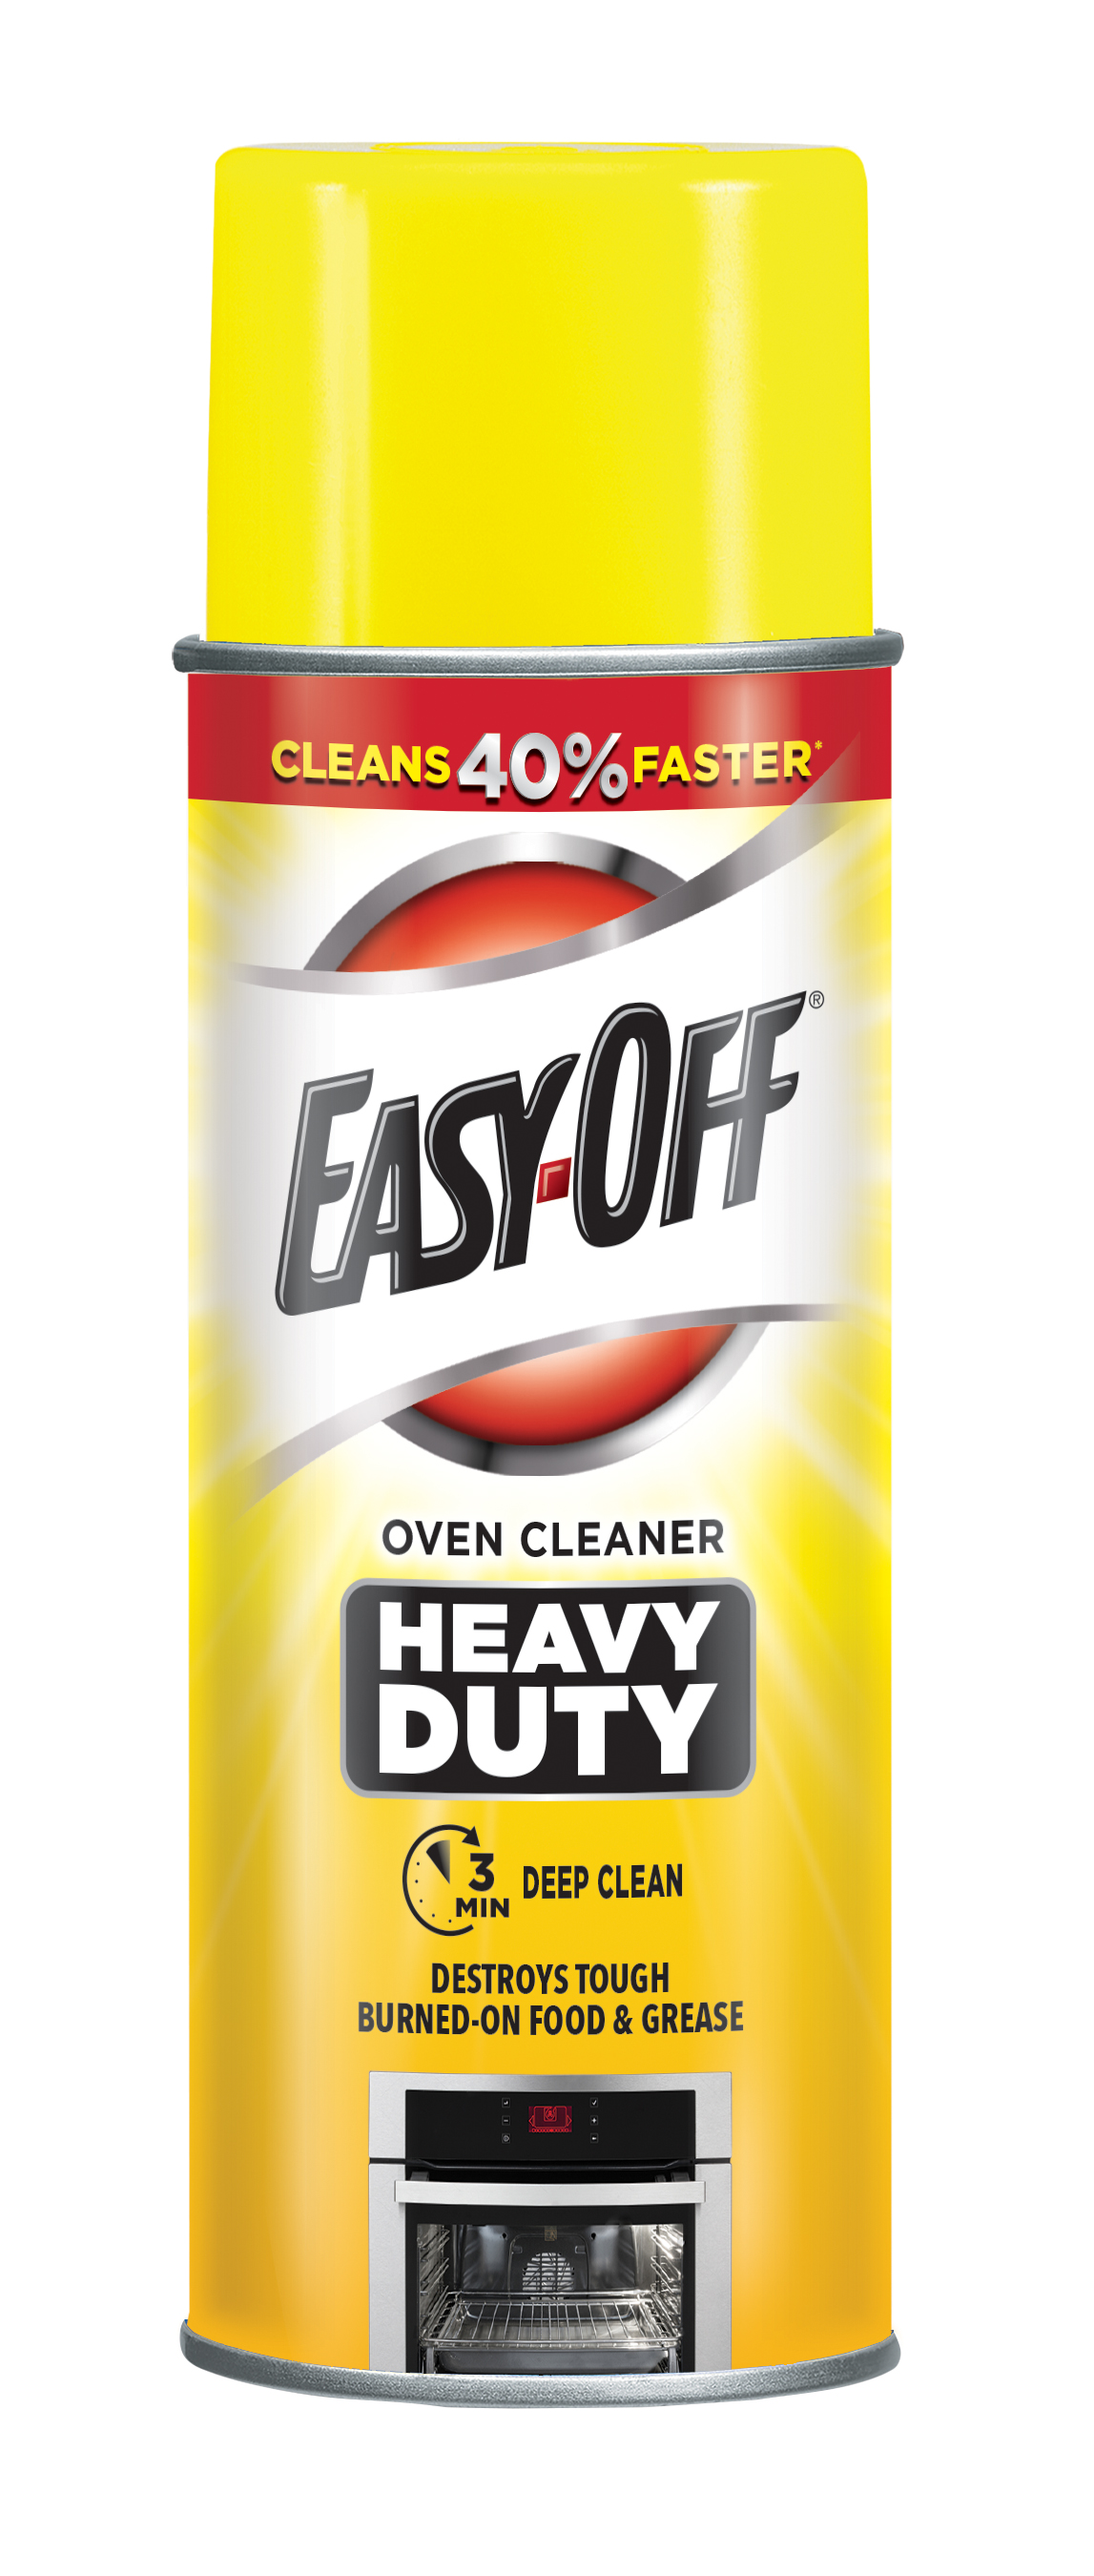 EASYOFF Heavy Duty Oven Cleaner Aerosol  Regular Scent Photo